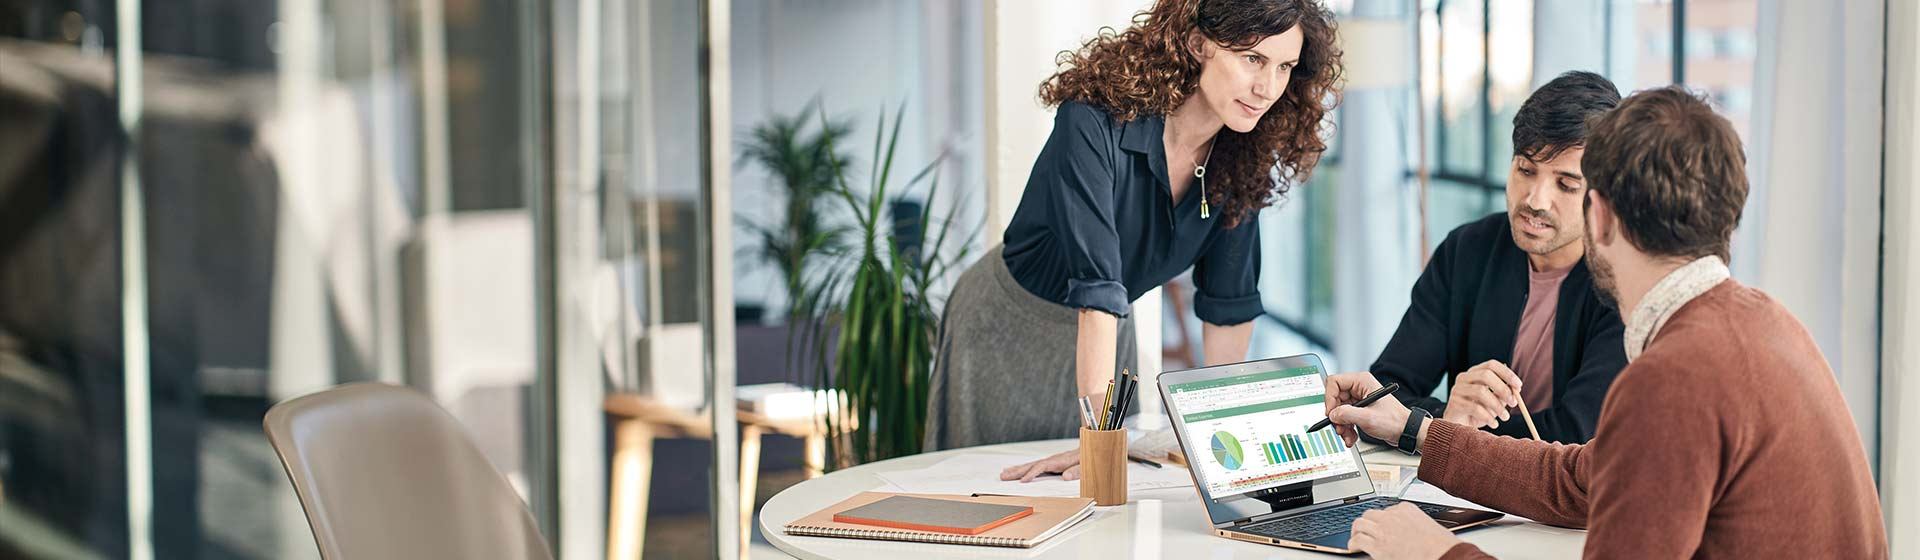 office pictures. office 365 is built for your business pictures